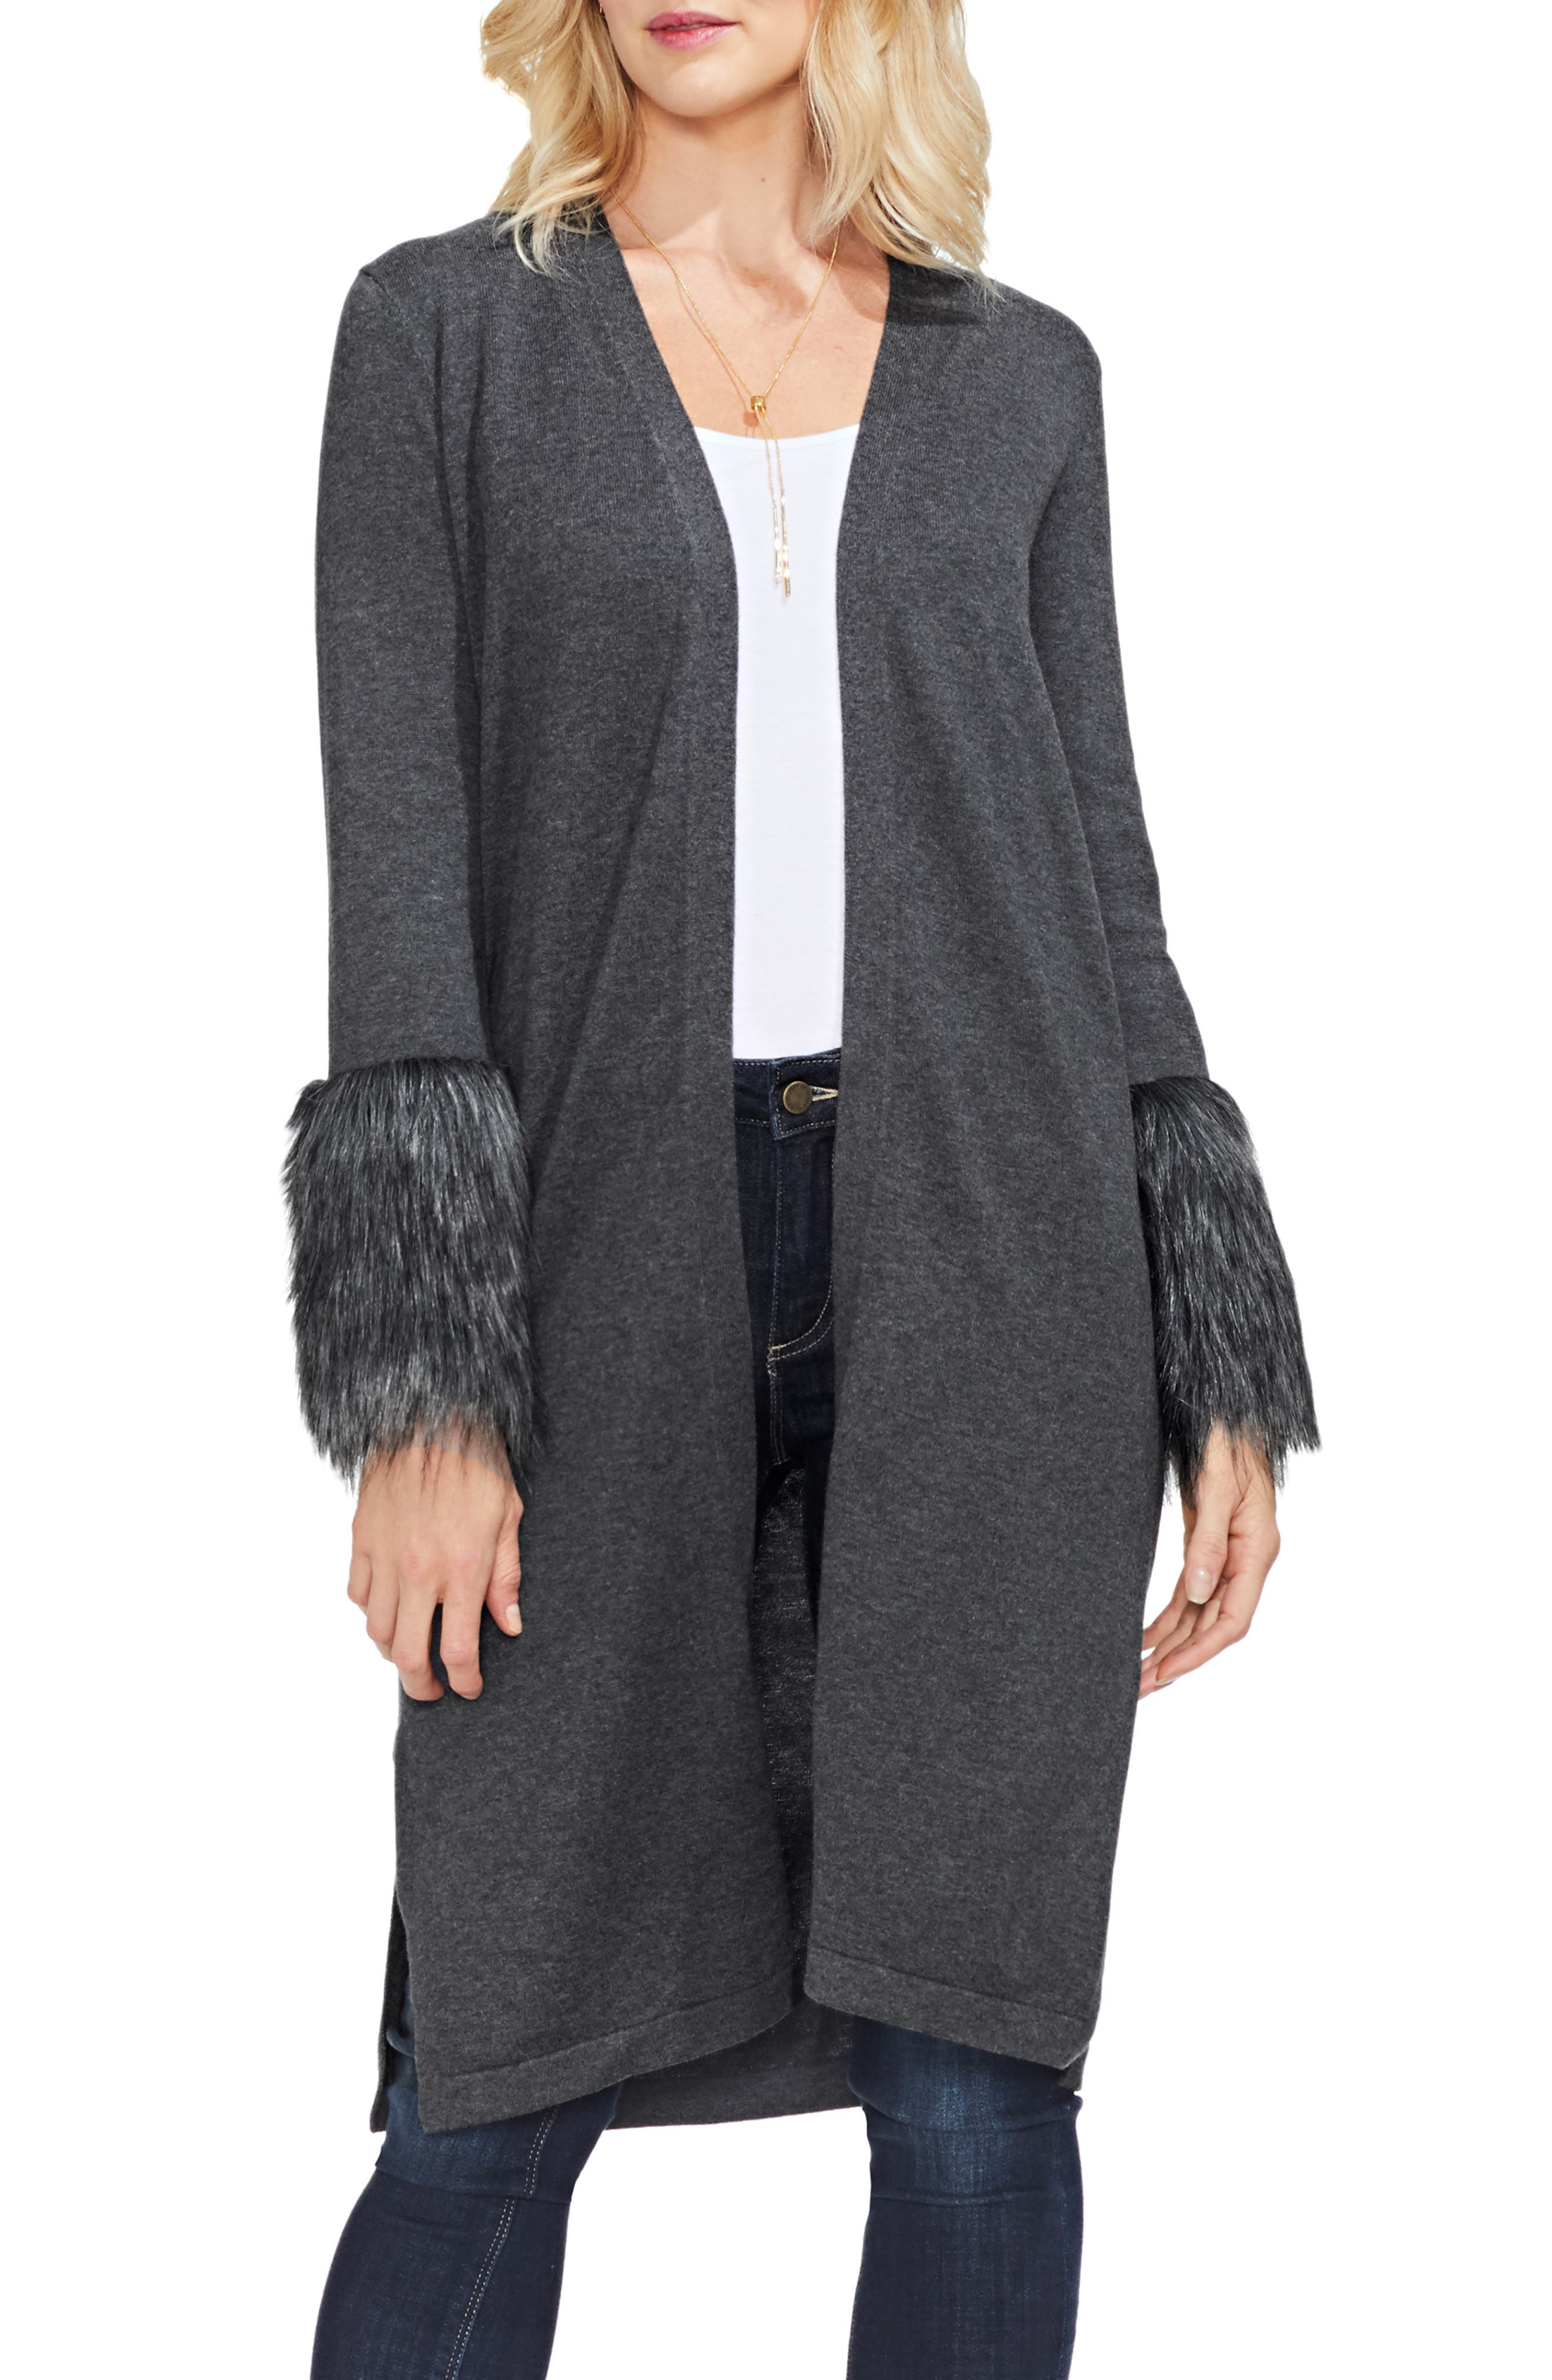 Faux Fur Cuff Cardigan,                             Main thumbnail 1, color,                             MED HEATHER GREY